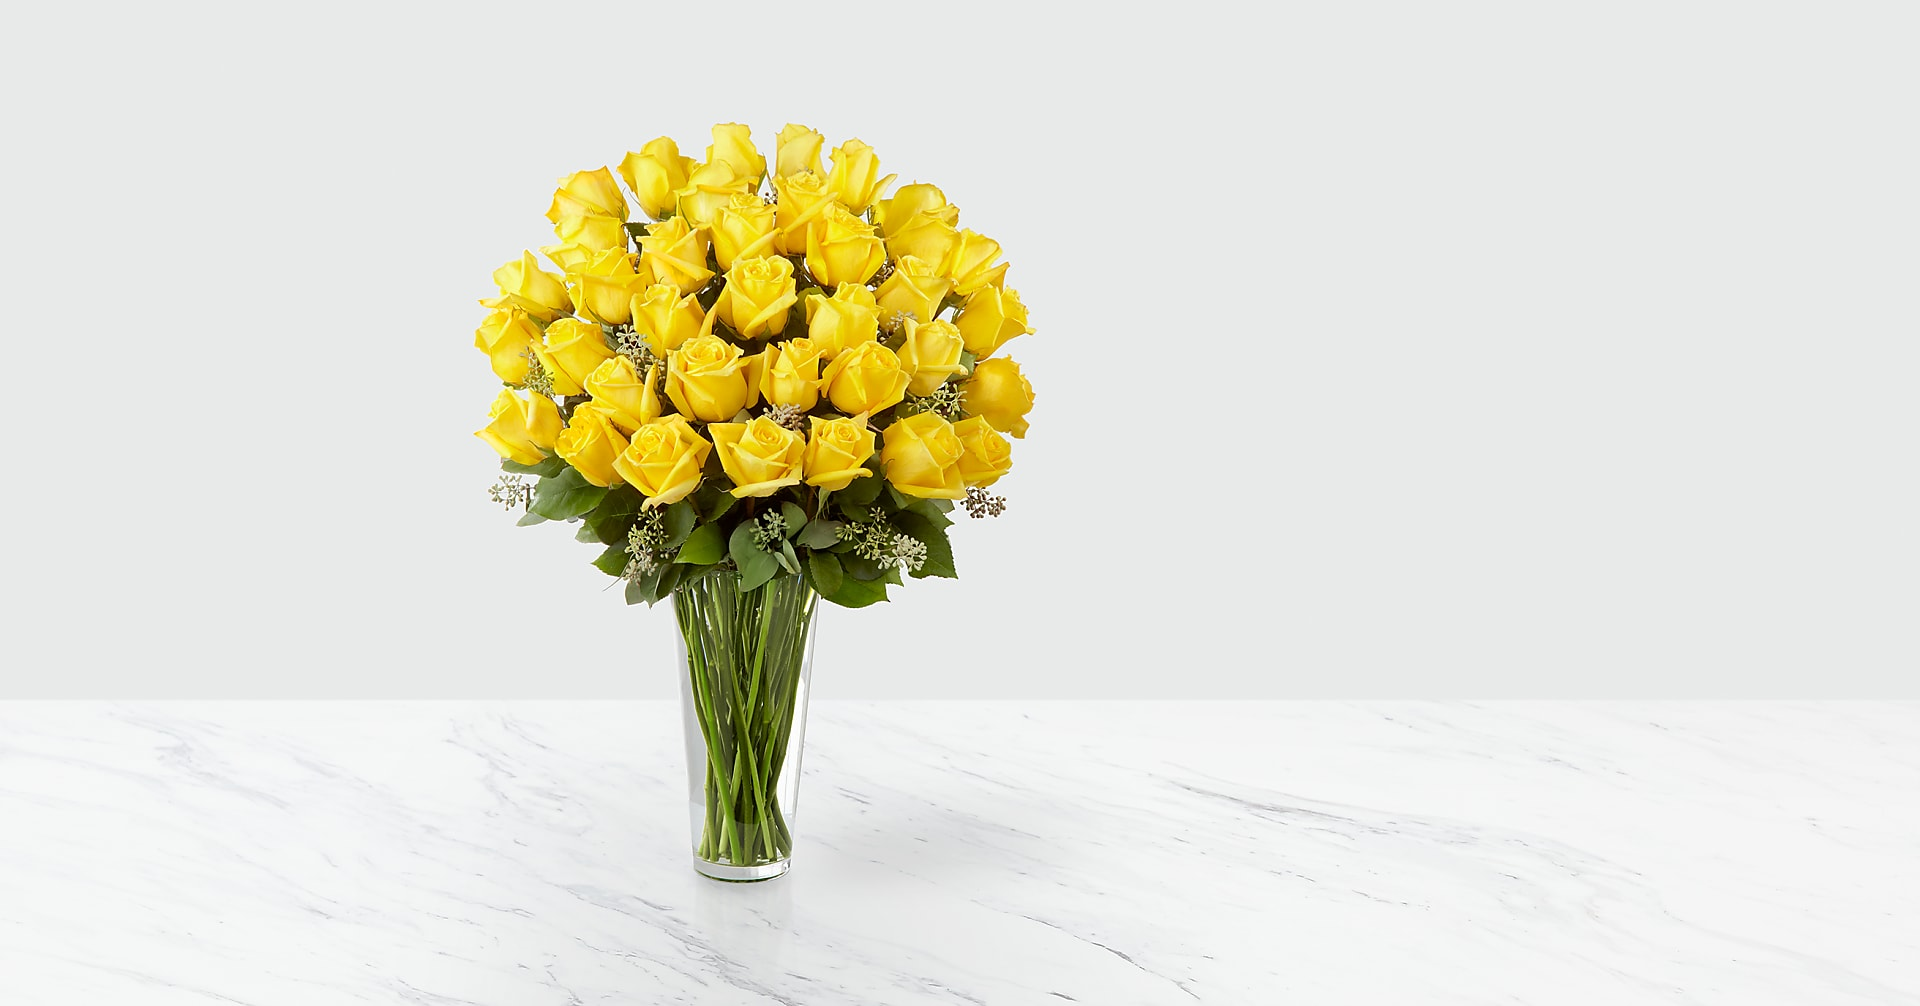 The Yellow Rose Bouquet - 36 Stems - VASE INCLUDED - Image 1 Of 2